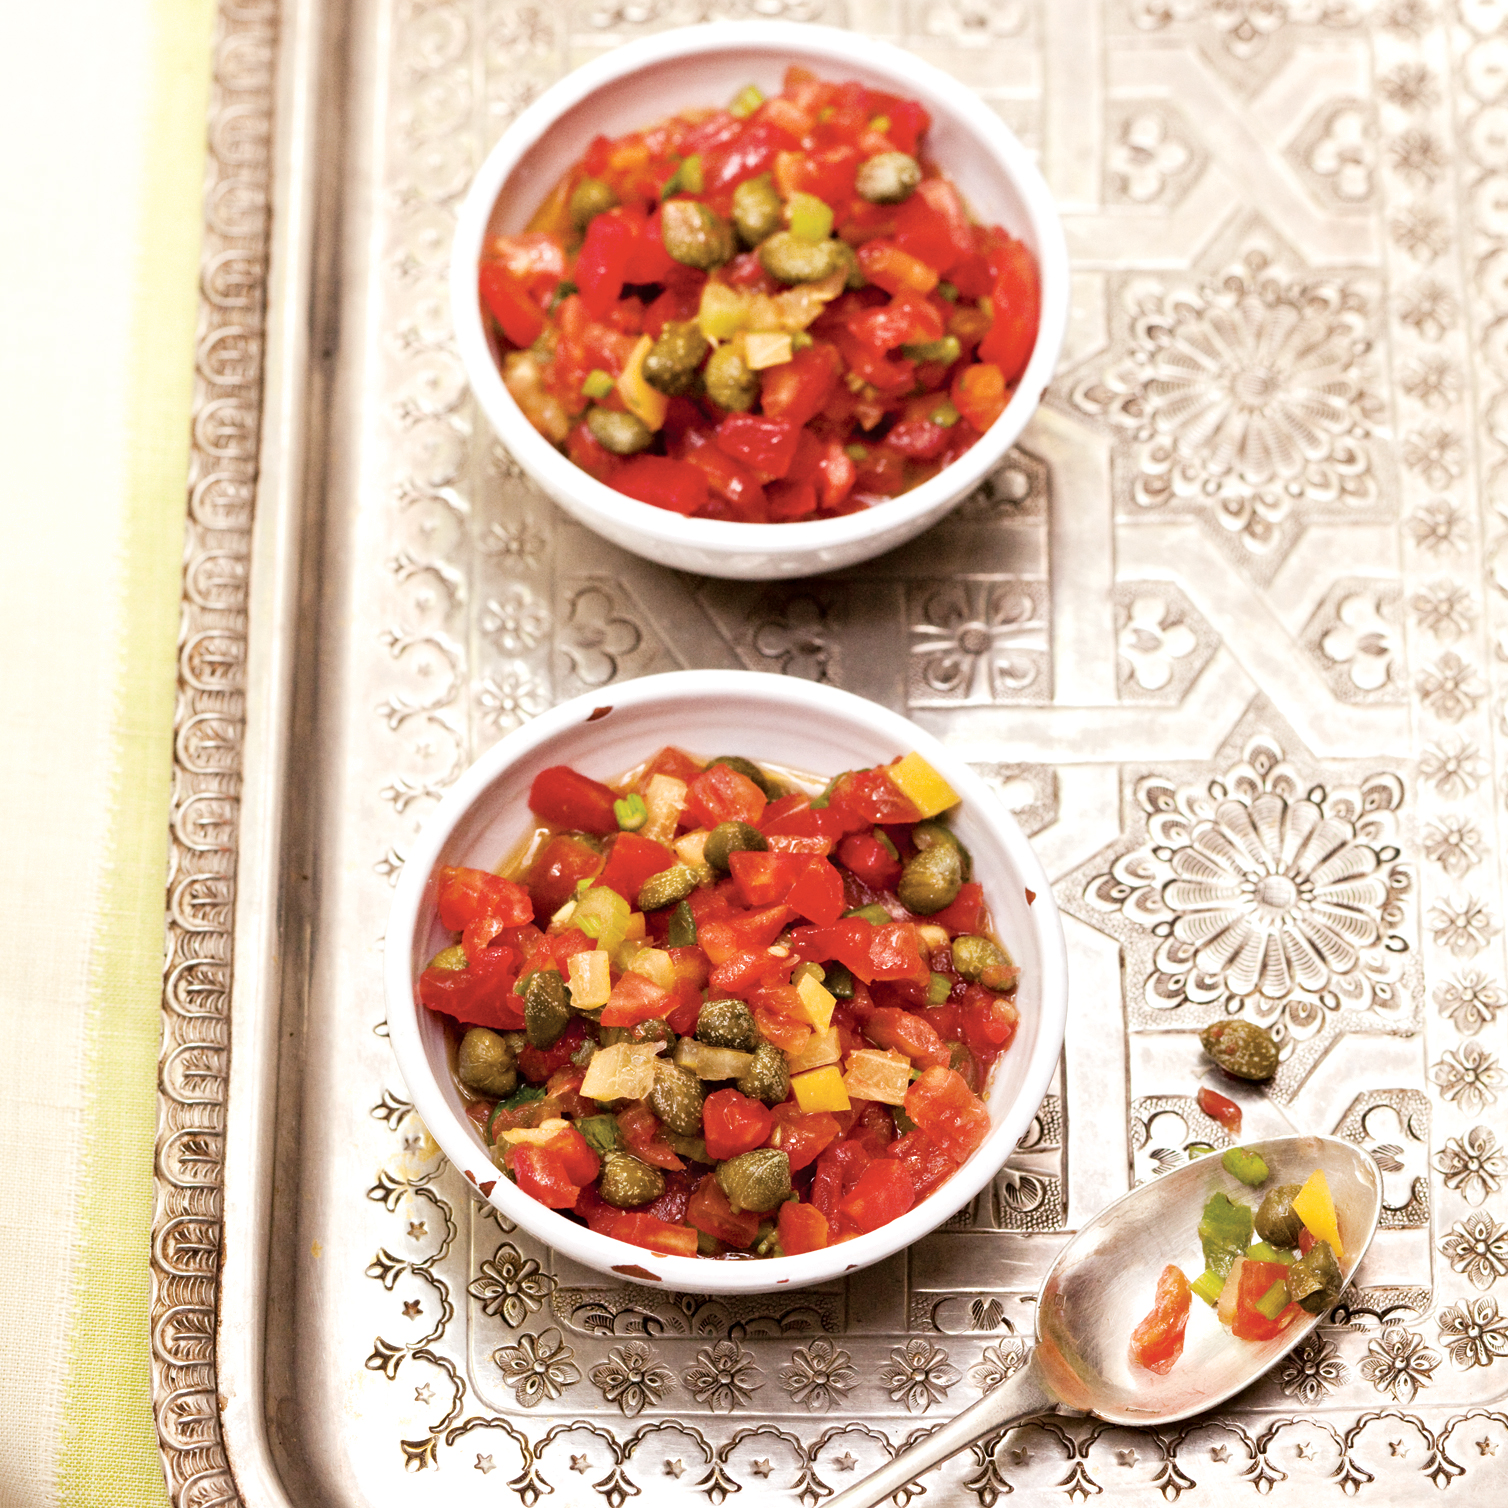 201110-r-fresh-tomato-and-caper-salad.jpg